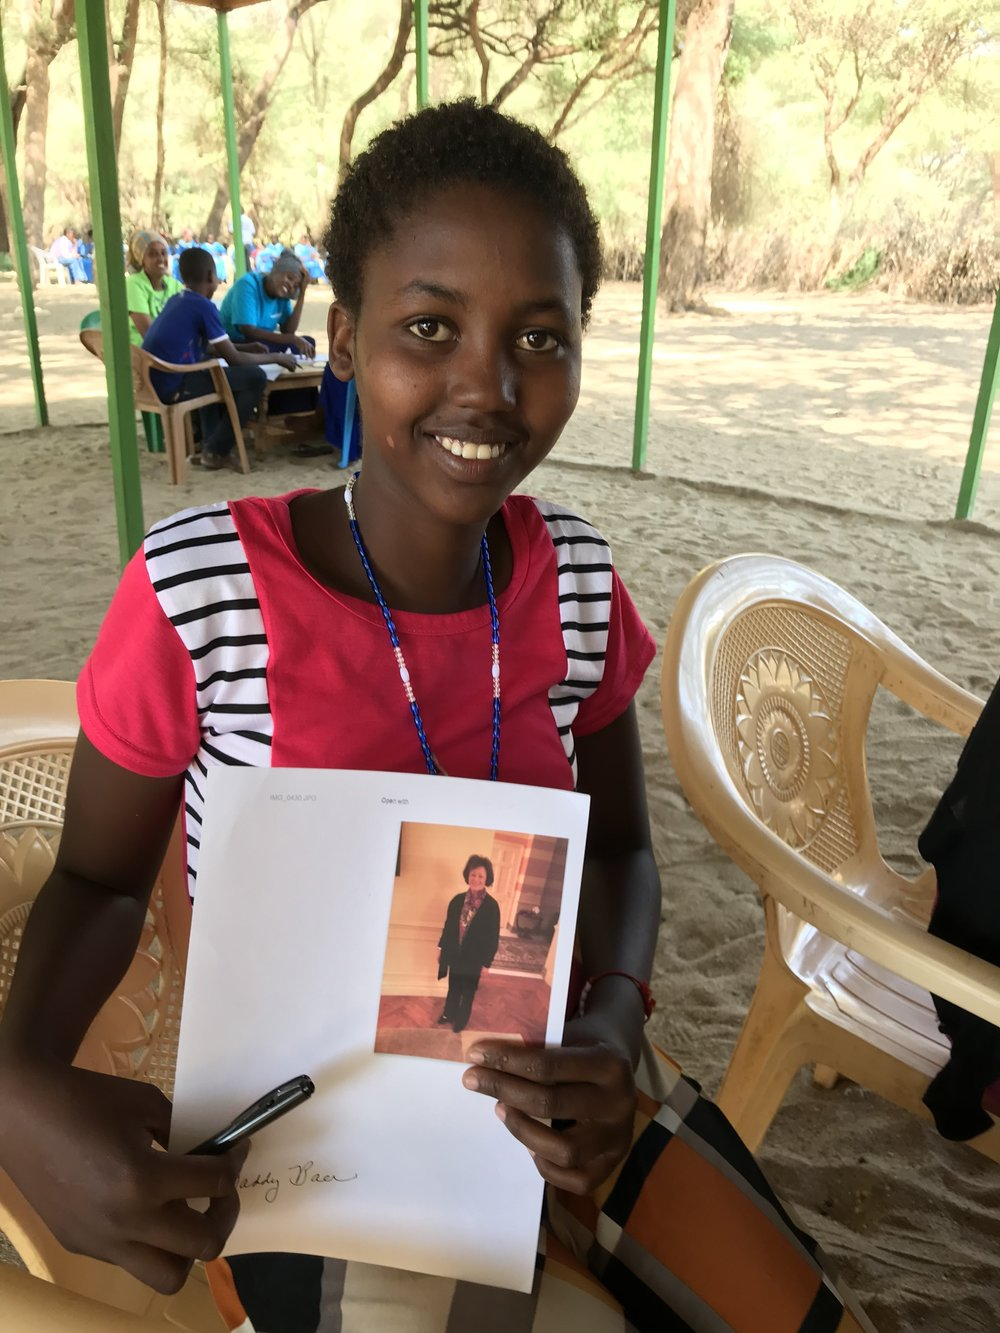 Monica - Monica is from South-Horr, Kenya. She lives with her mother and five brothers. Monica attends the Irene School in Samburu County. She is very focused on her studies, doing her best in secondary school.